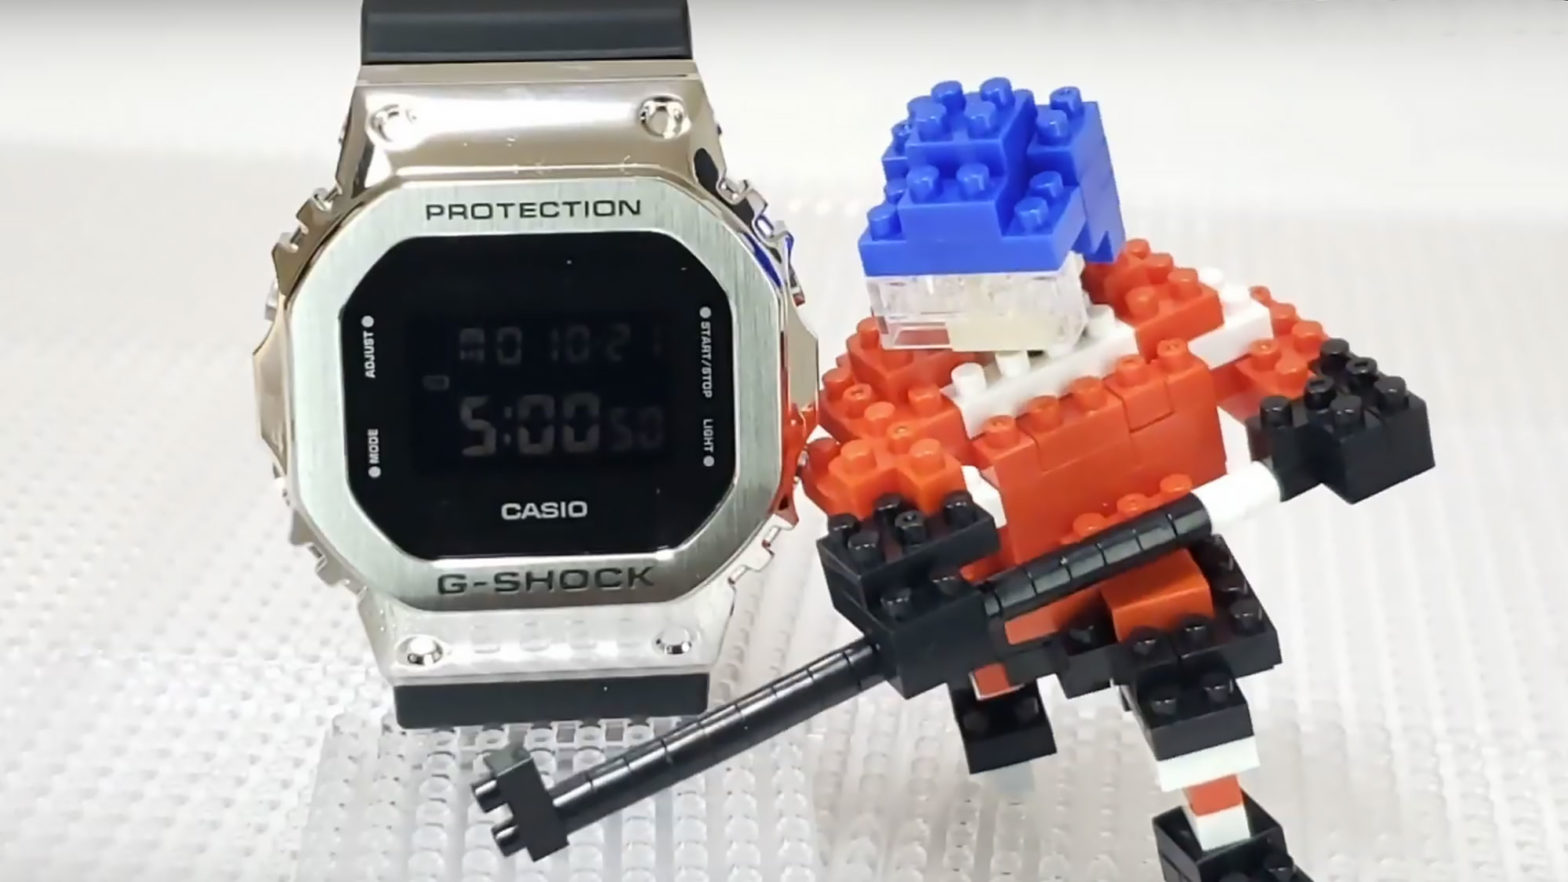 G-Shock x nanoblock Collab Movie